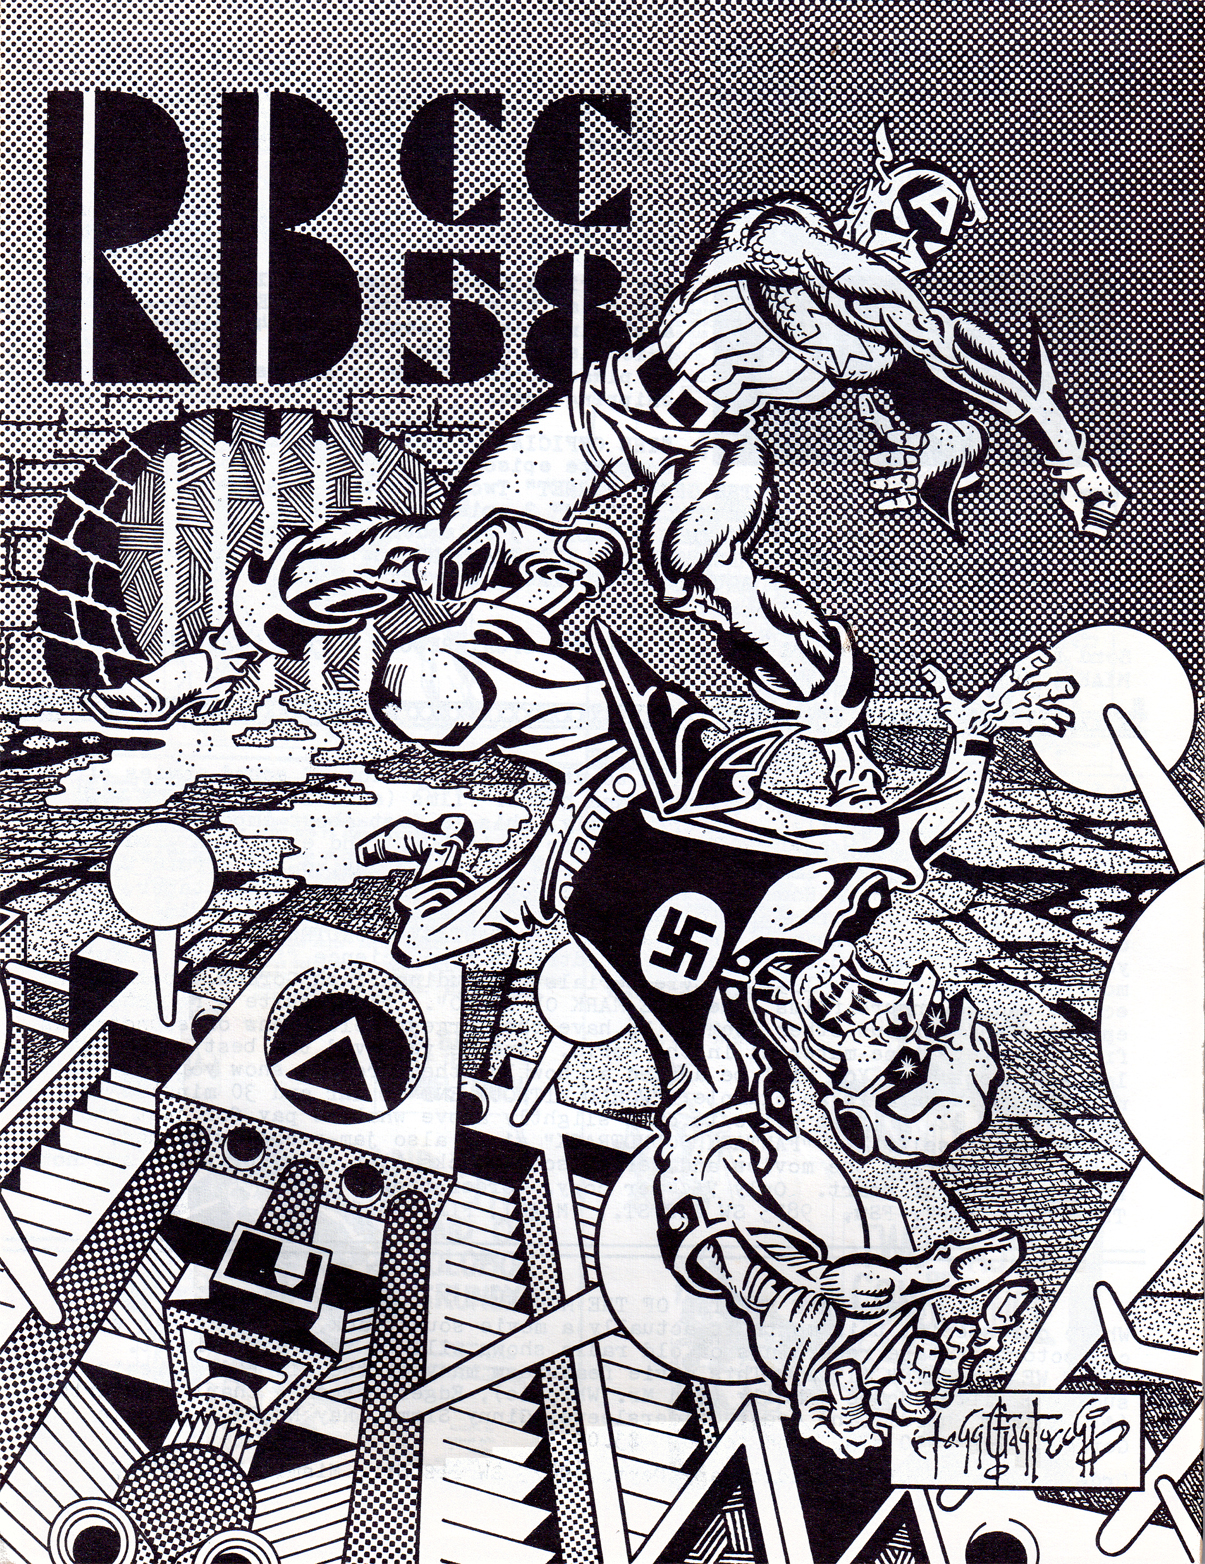 Rocket's Blast Comicollector (RBCC) #58 cover by John G. Fantucchio